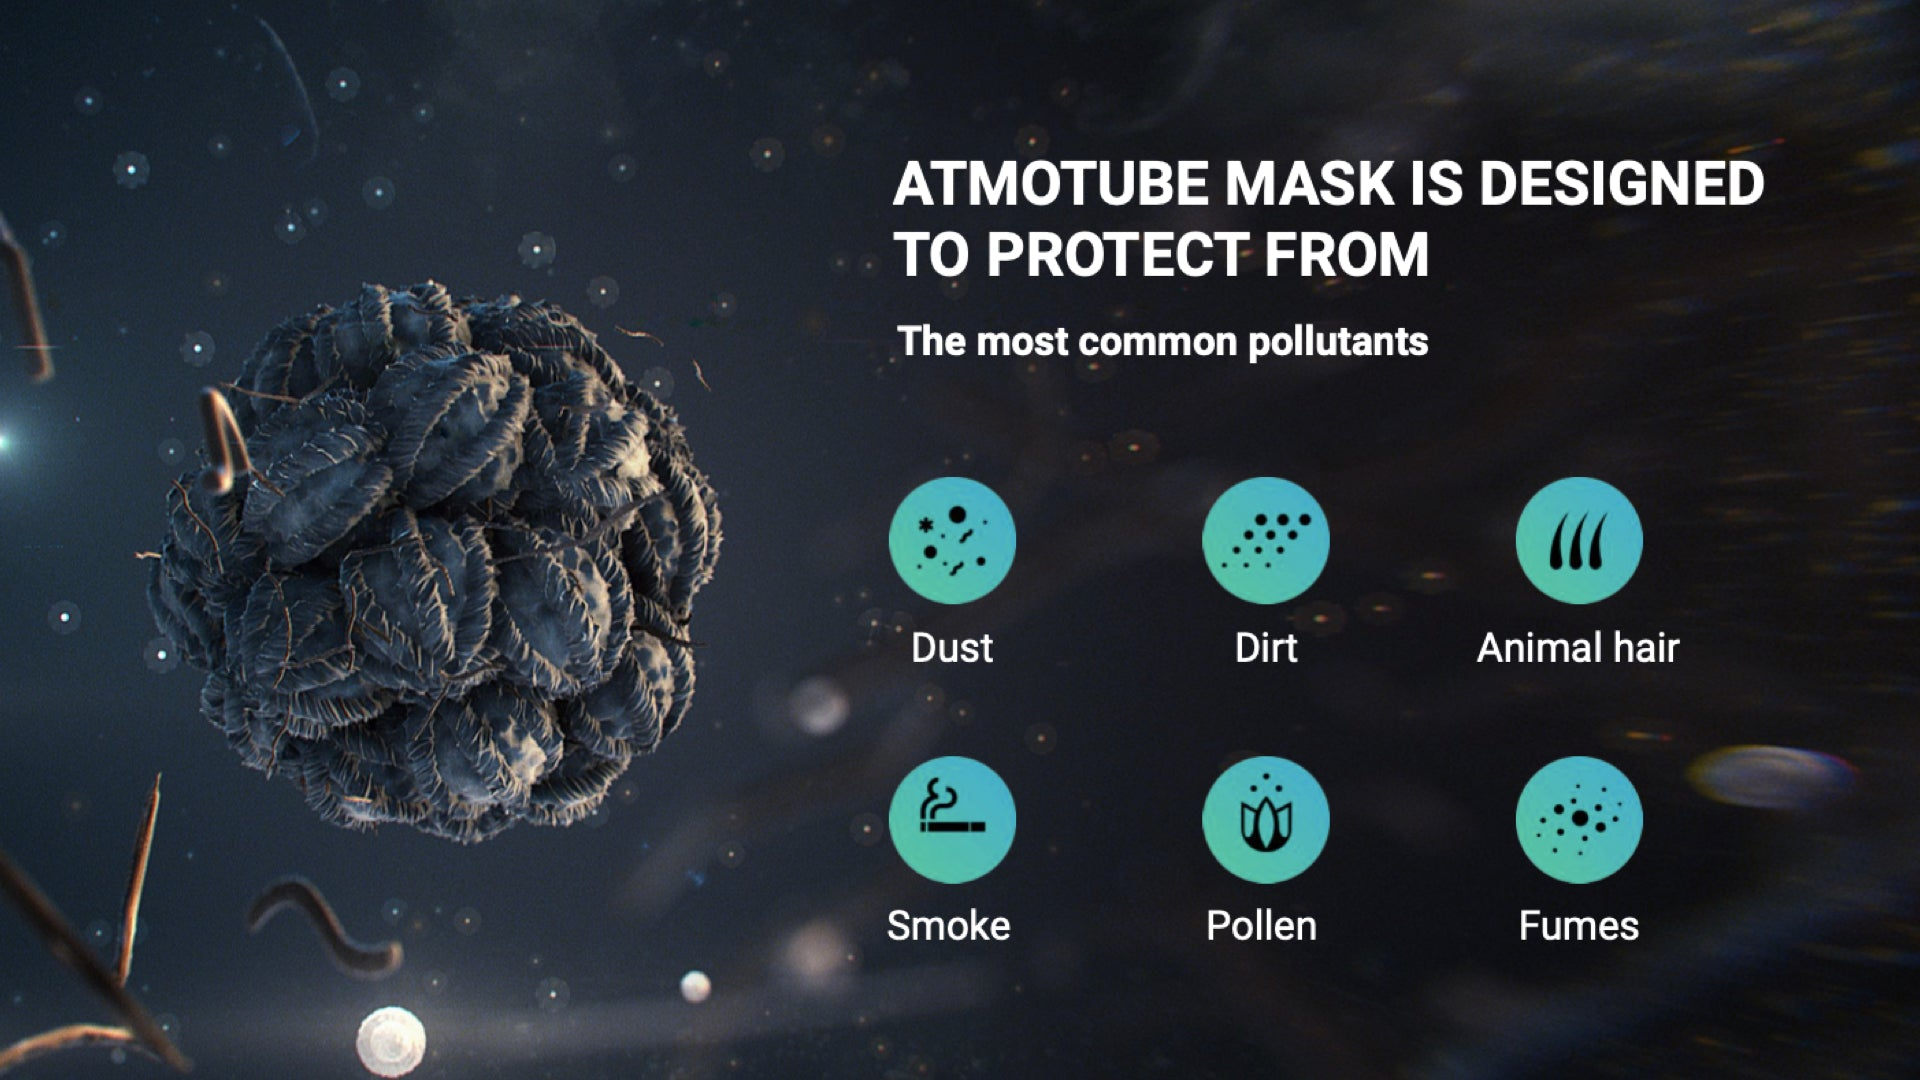 Atmotube Anti-Pollution Mask